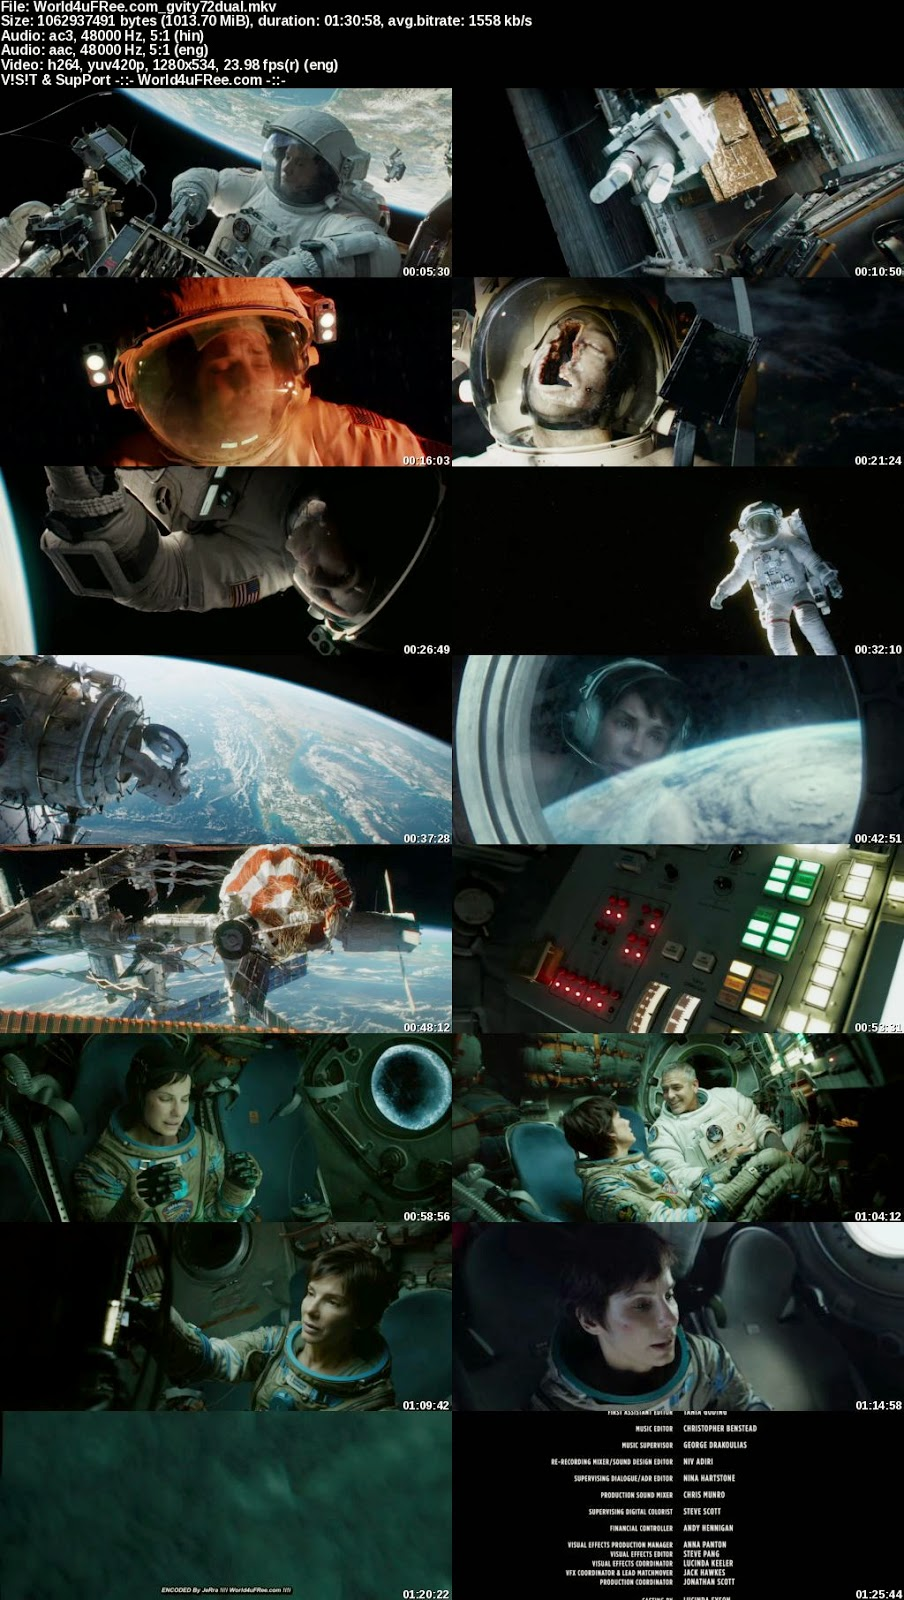 gravity in hindi language Gravity 2013 hindi dubbed 250mb bluray 480p imdb ratings: 65/10 genres: drama, sci-fi, thriller language: hindi release date: 4 october 2013 quality: 480p.